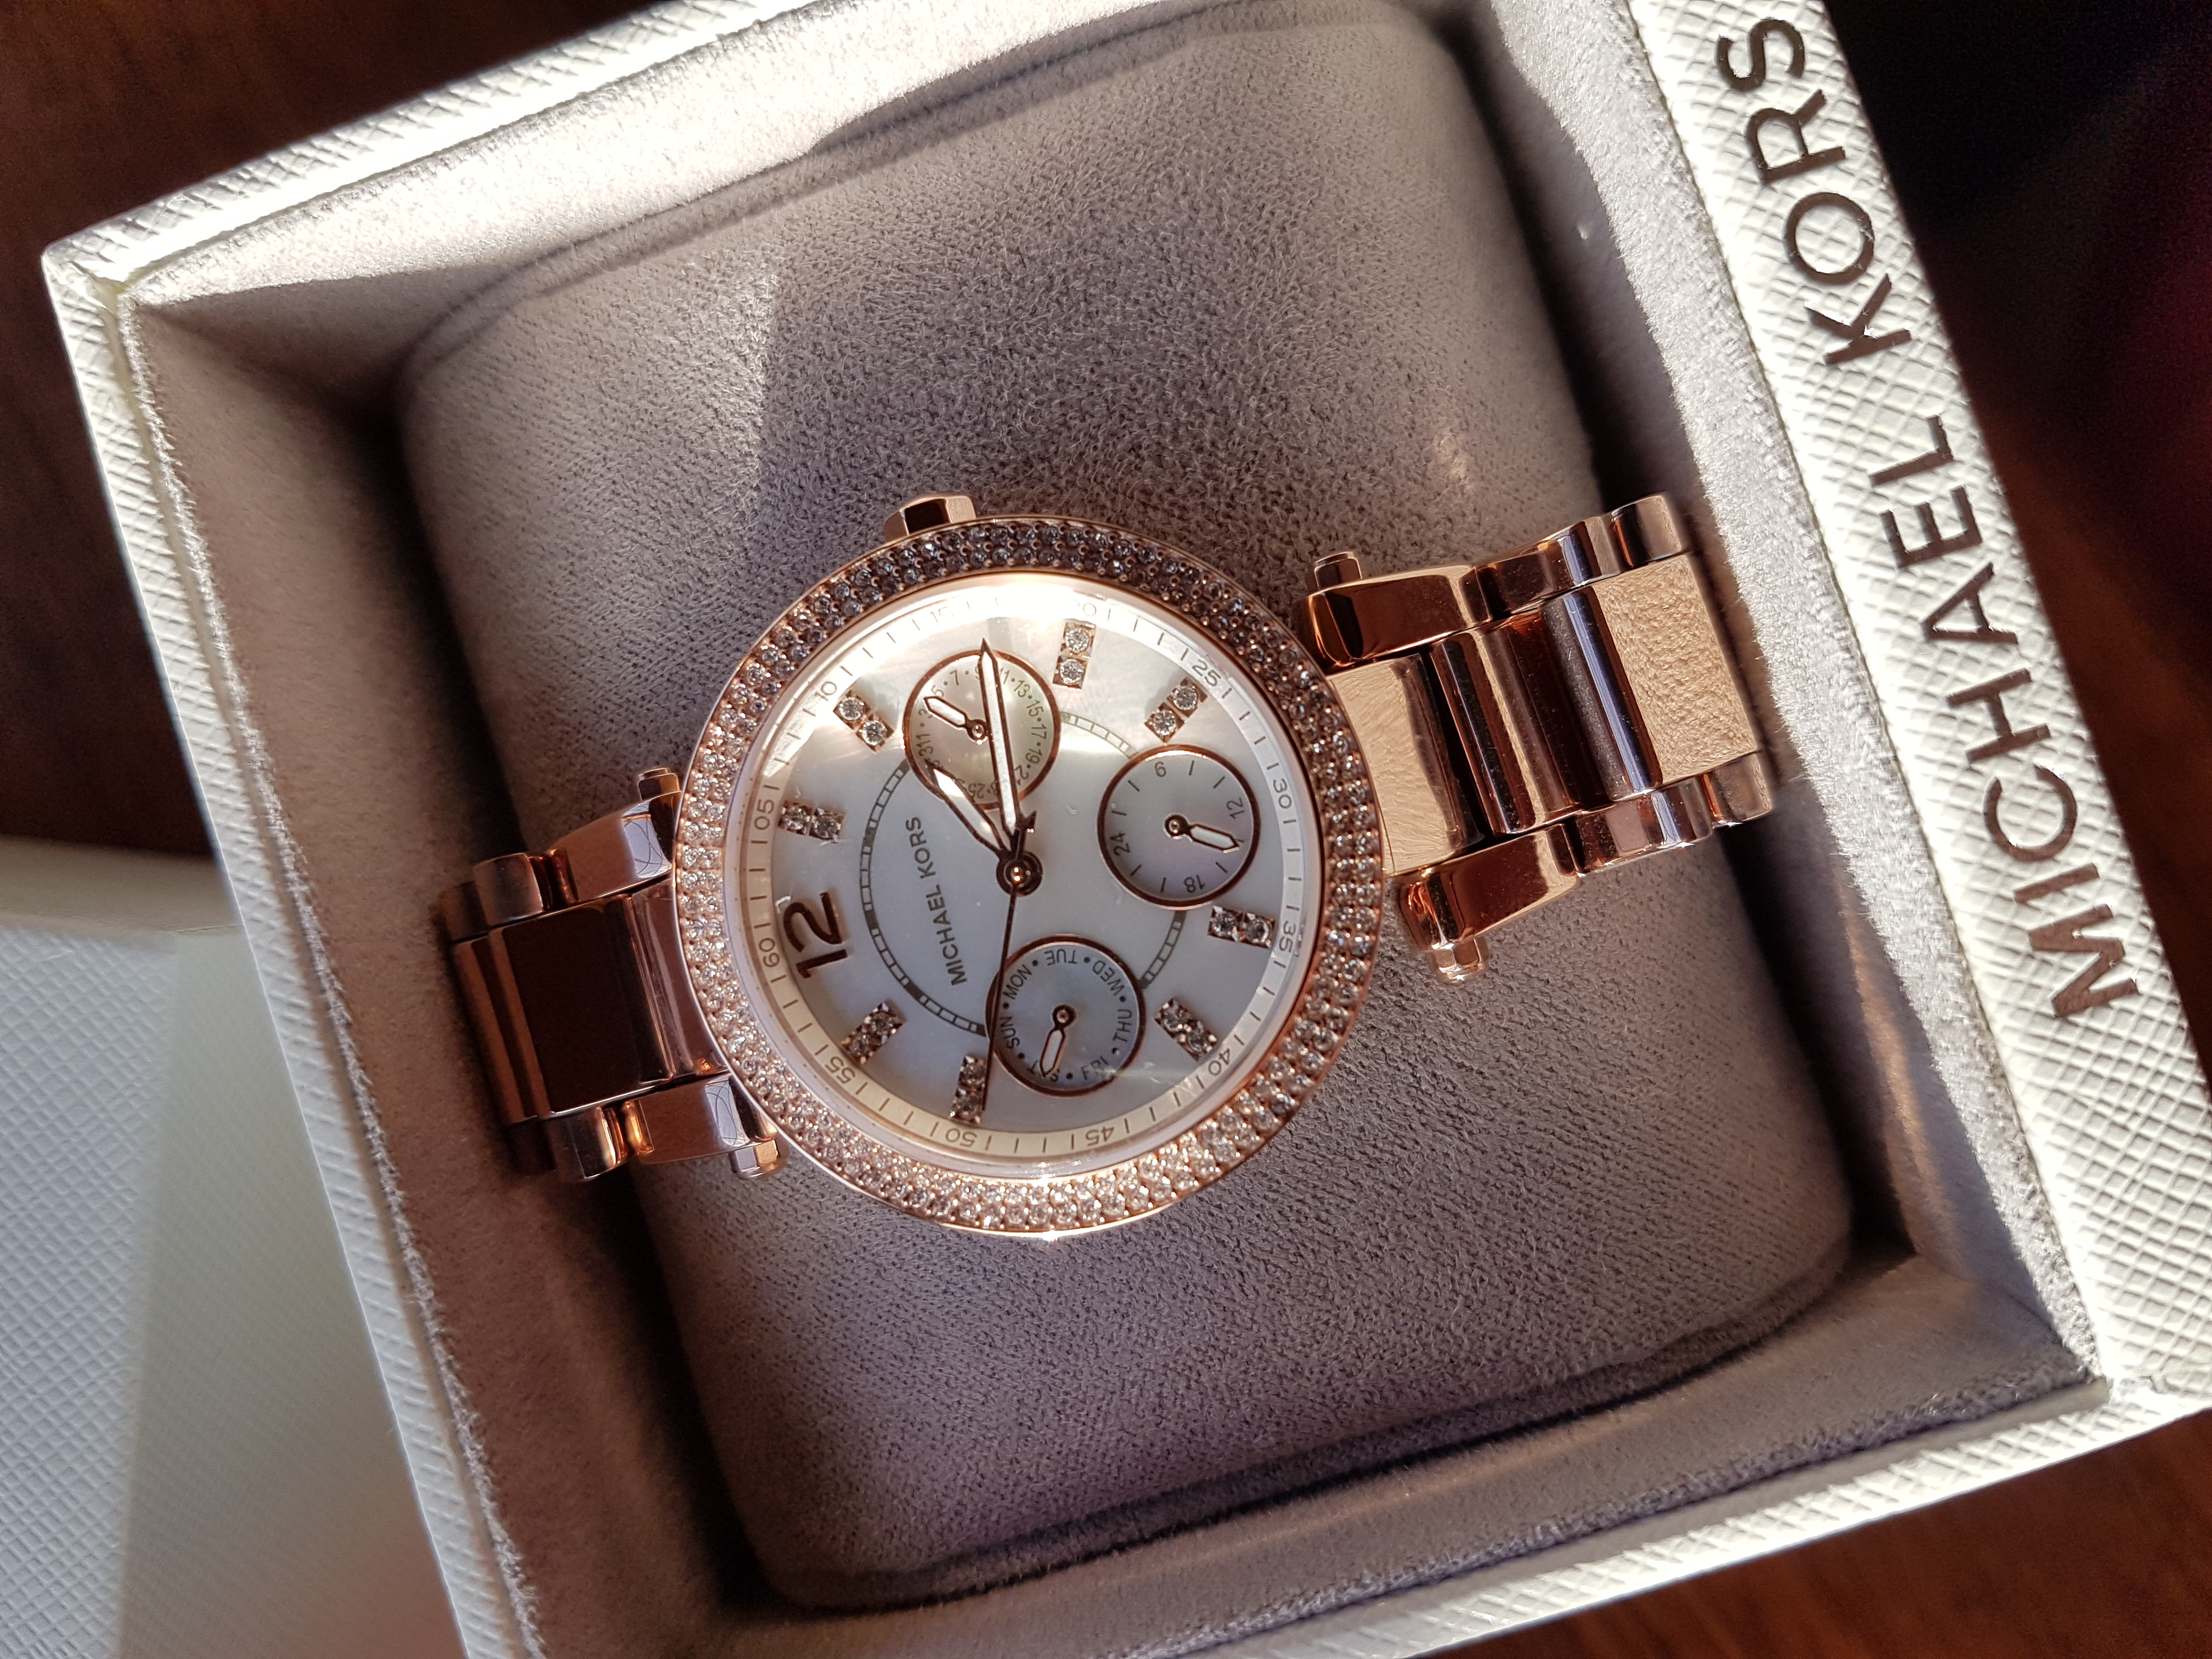 9947d403d8d1 This watch is absolutely perfect! As I have a small wrist